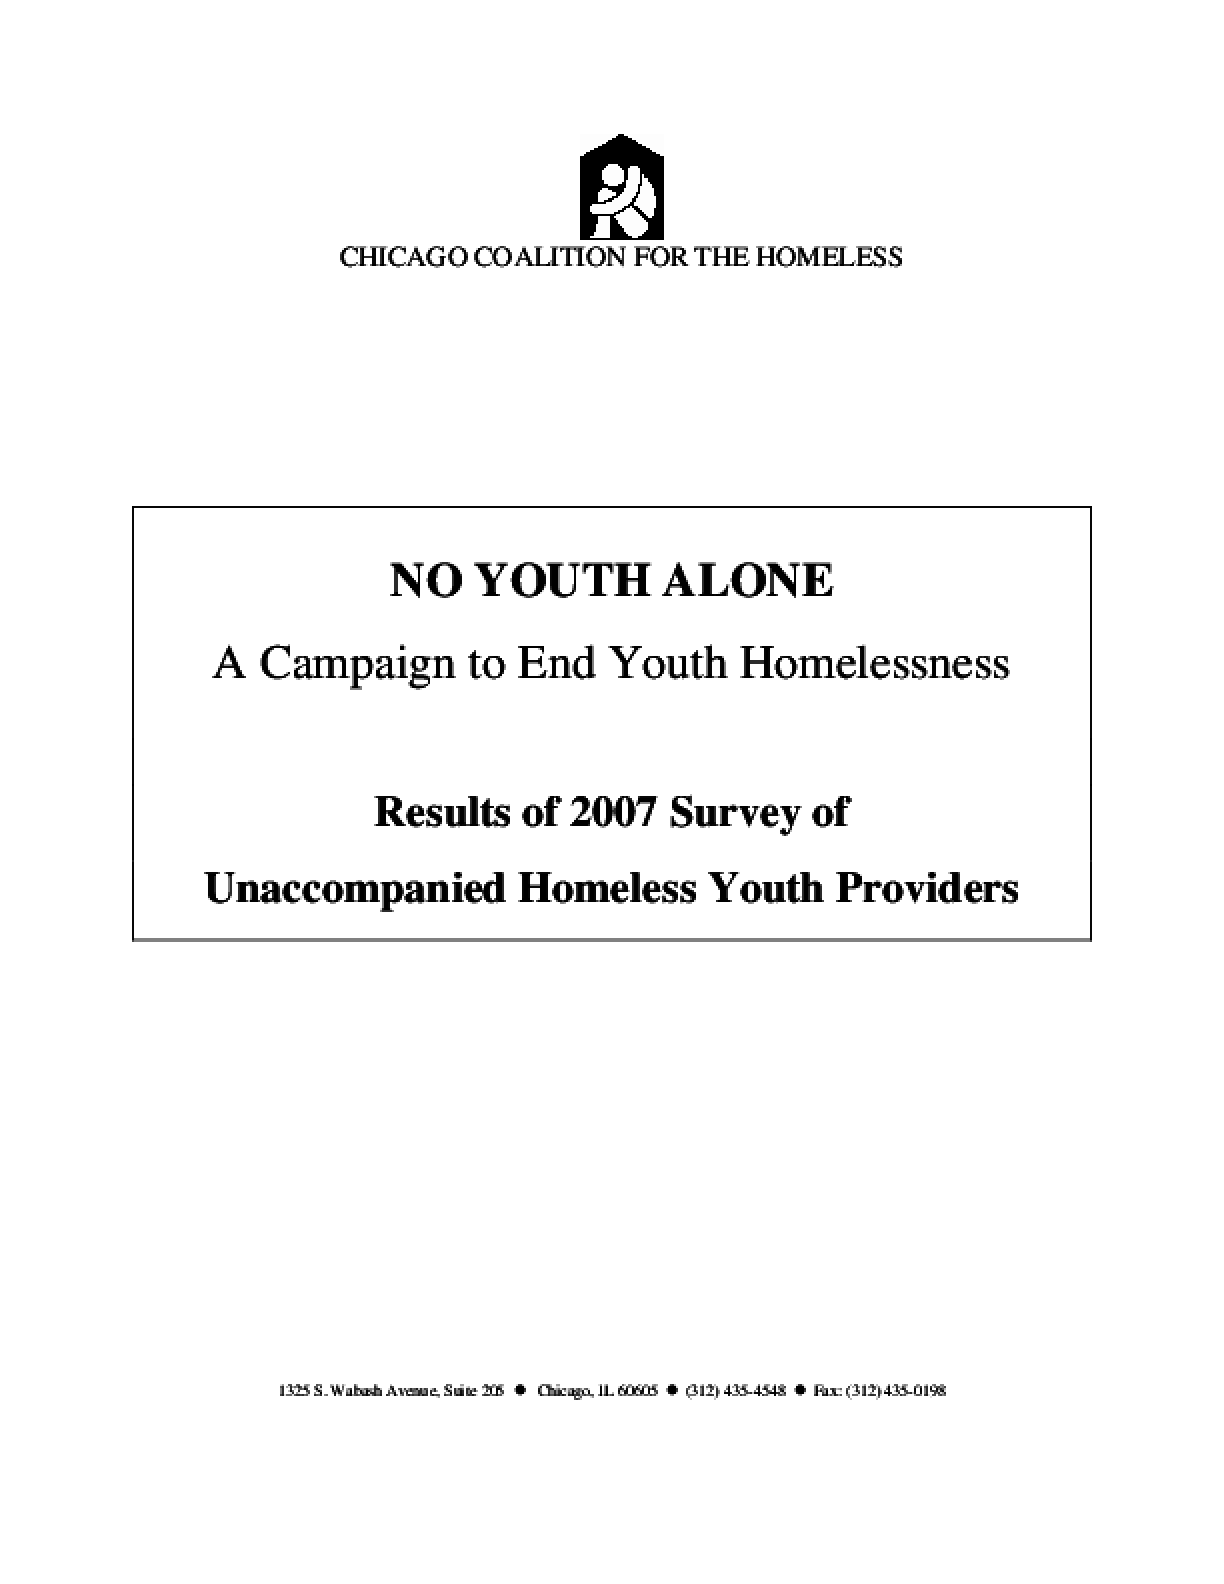 Results of 2007 Survey of Unaccompanied Homeless Youth Providers